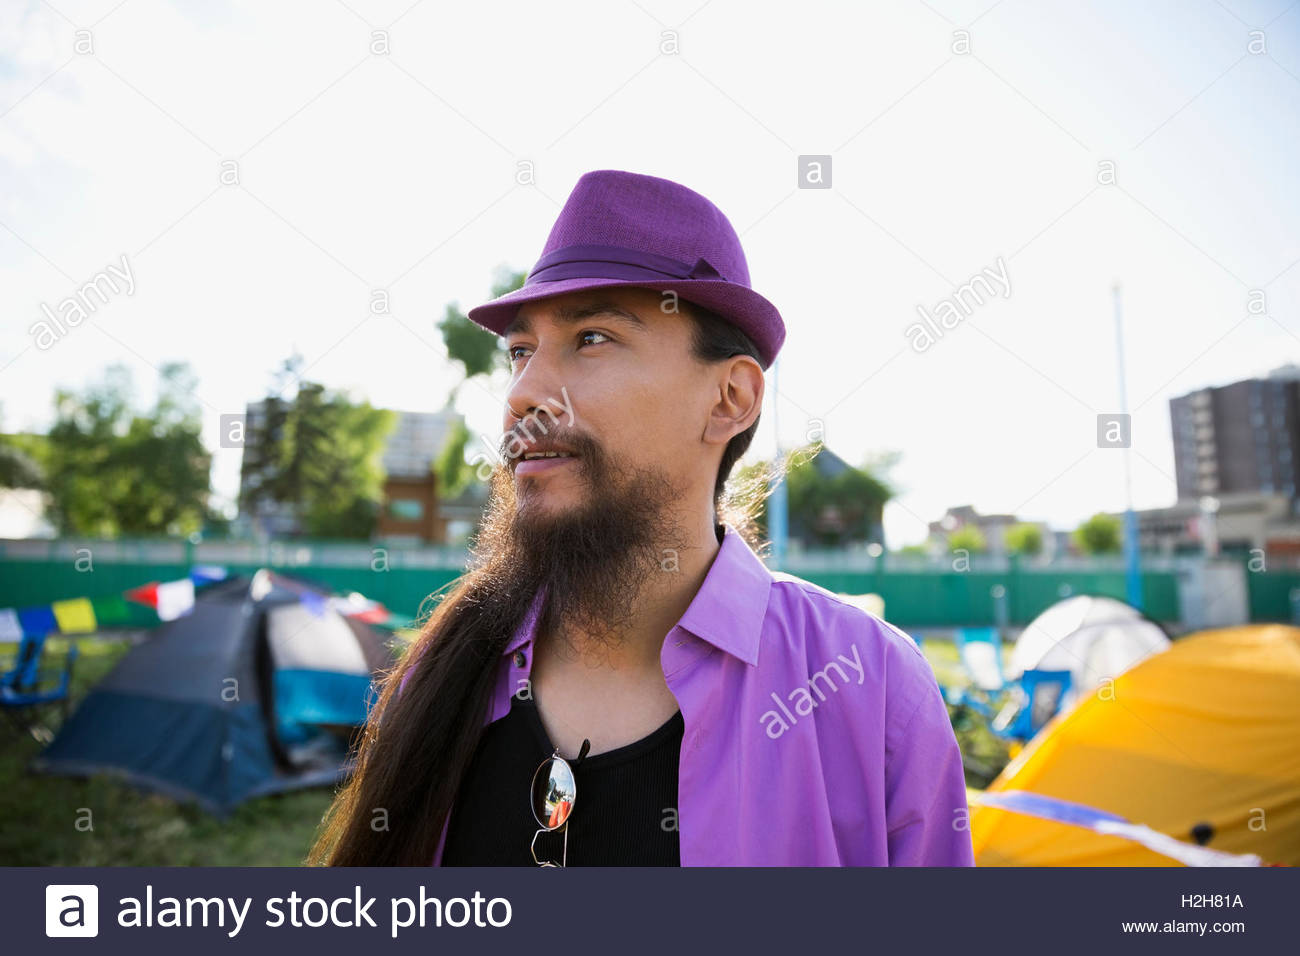 Young man with long hair and beard wearing purple hat looking away at summer music festival campsite - Stock Image